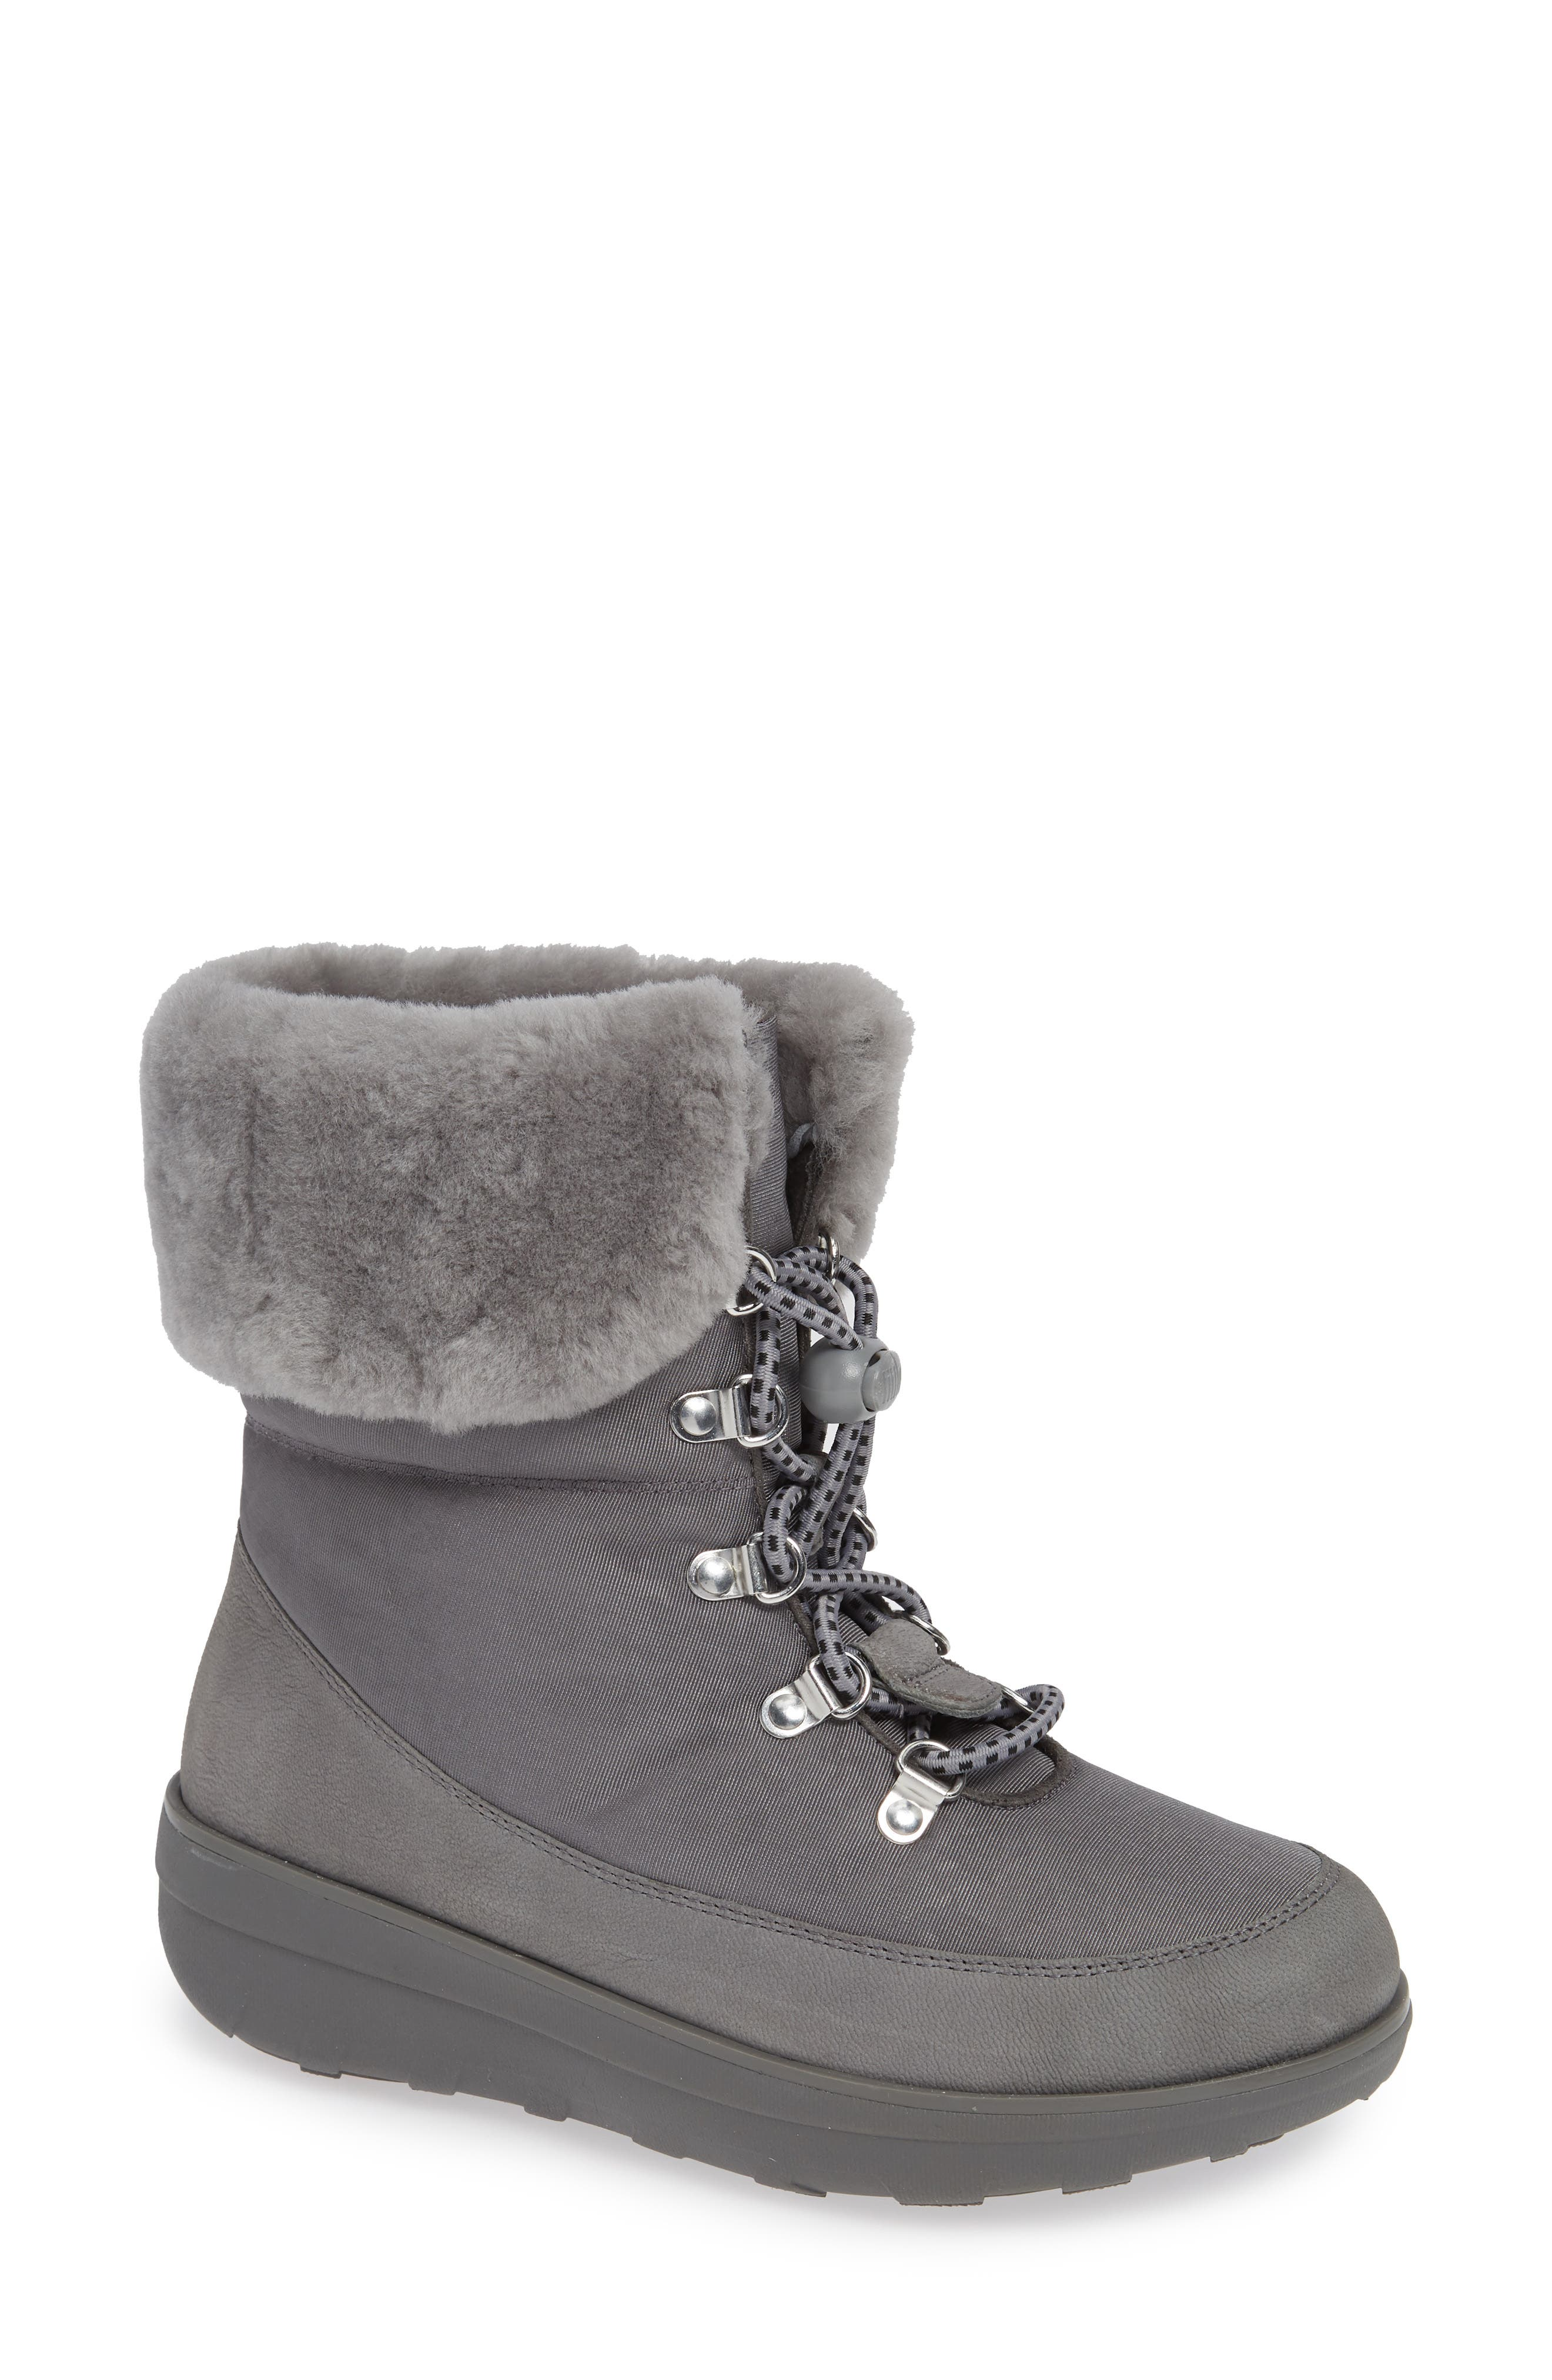 Fitflop Holly Genuine Shearling Lined Bootie, Grey